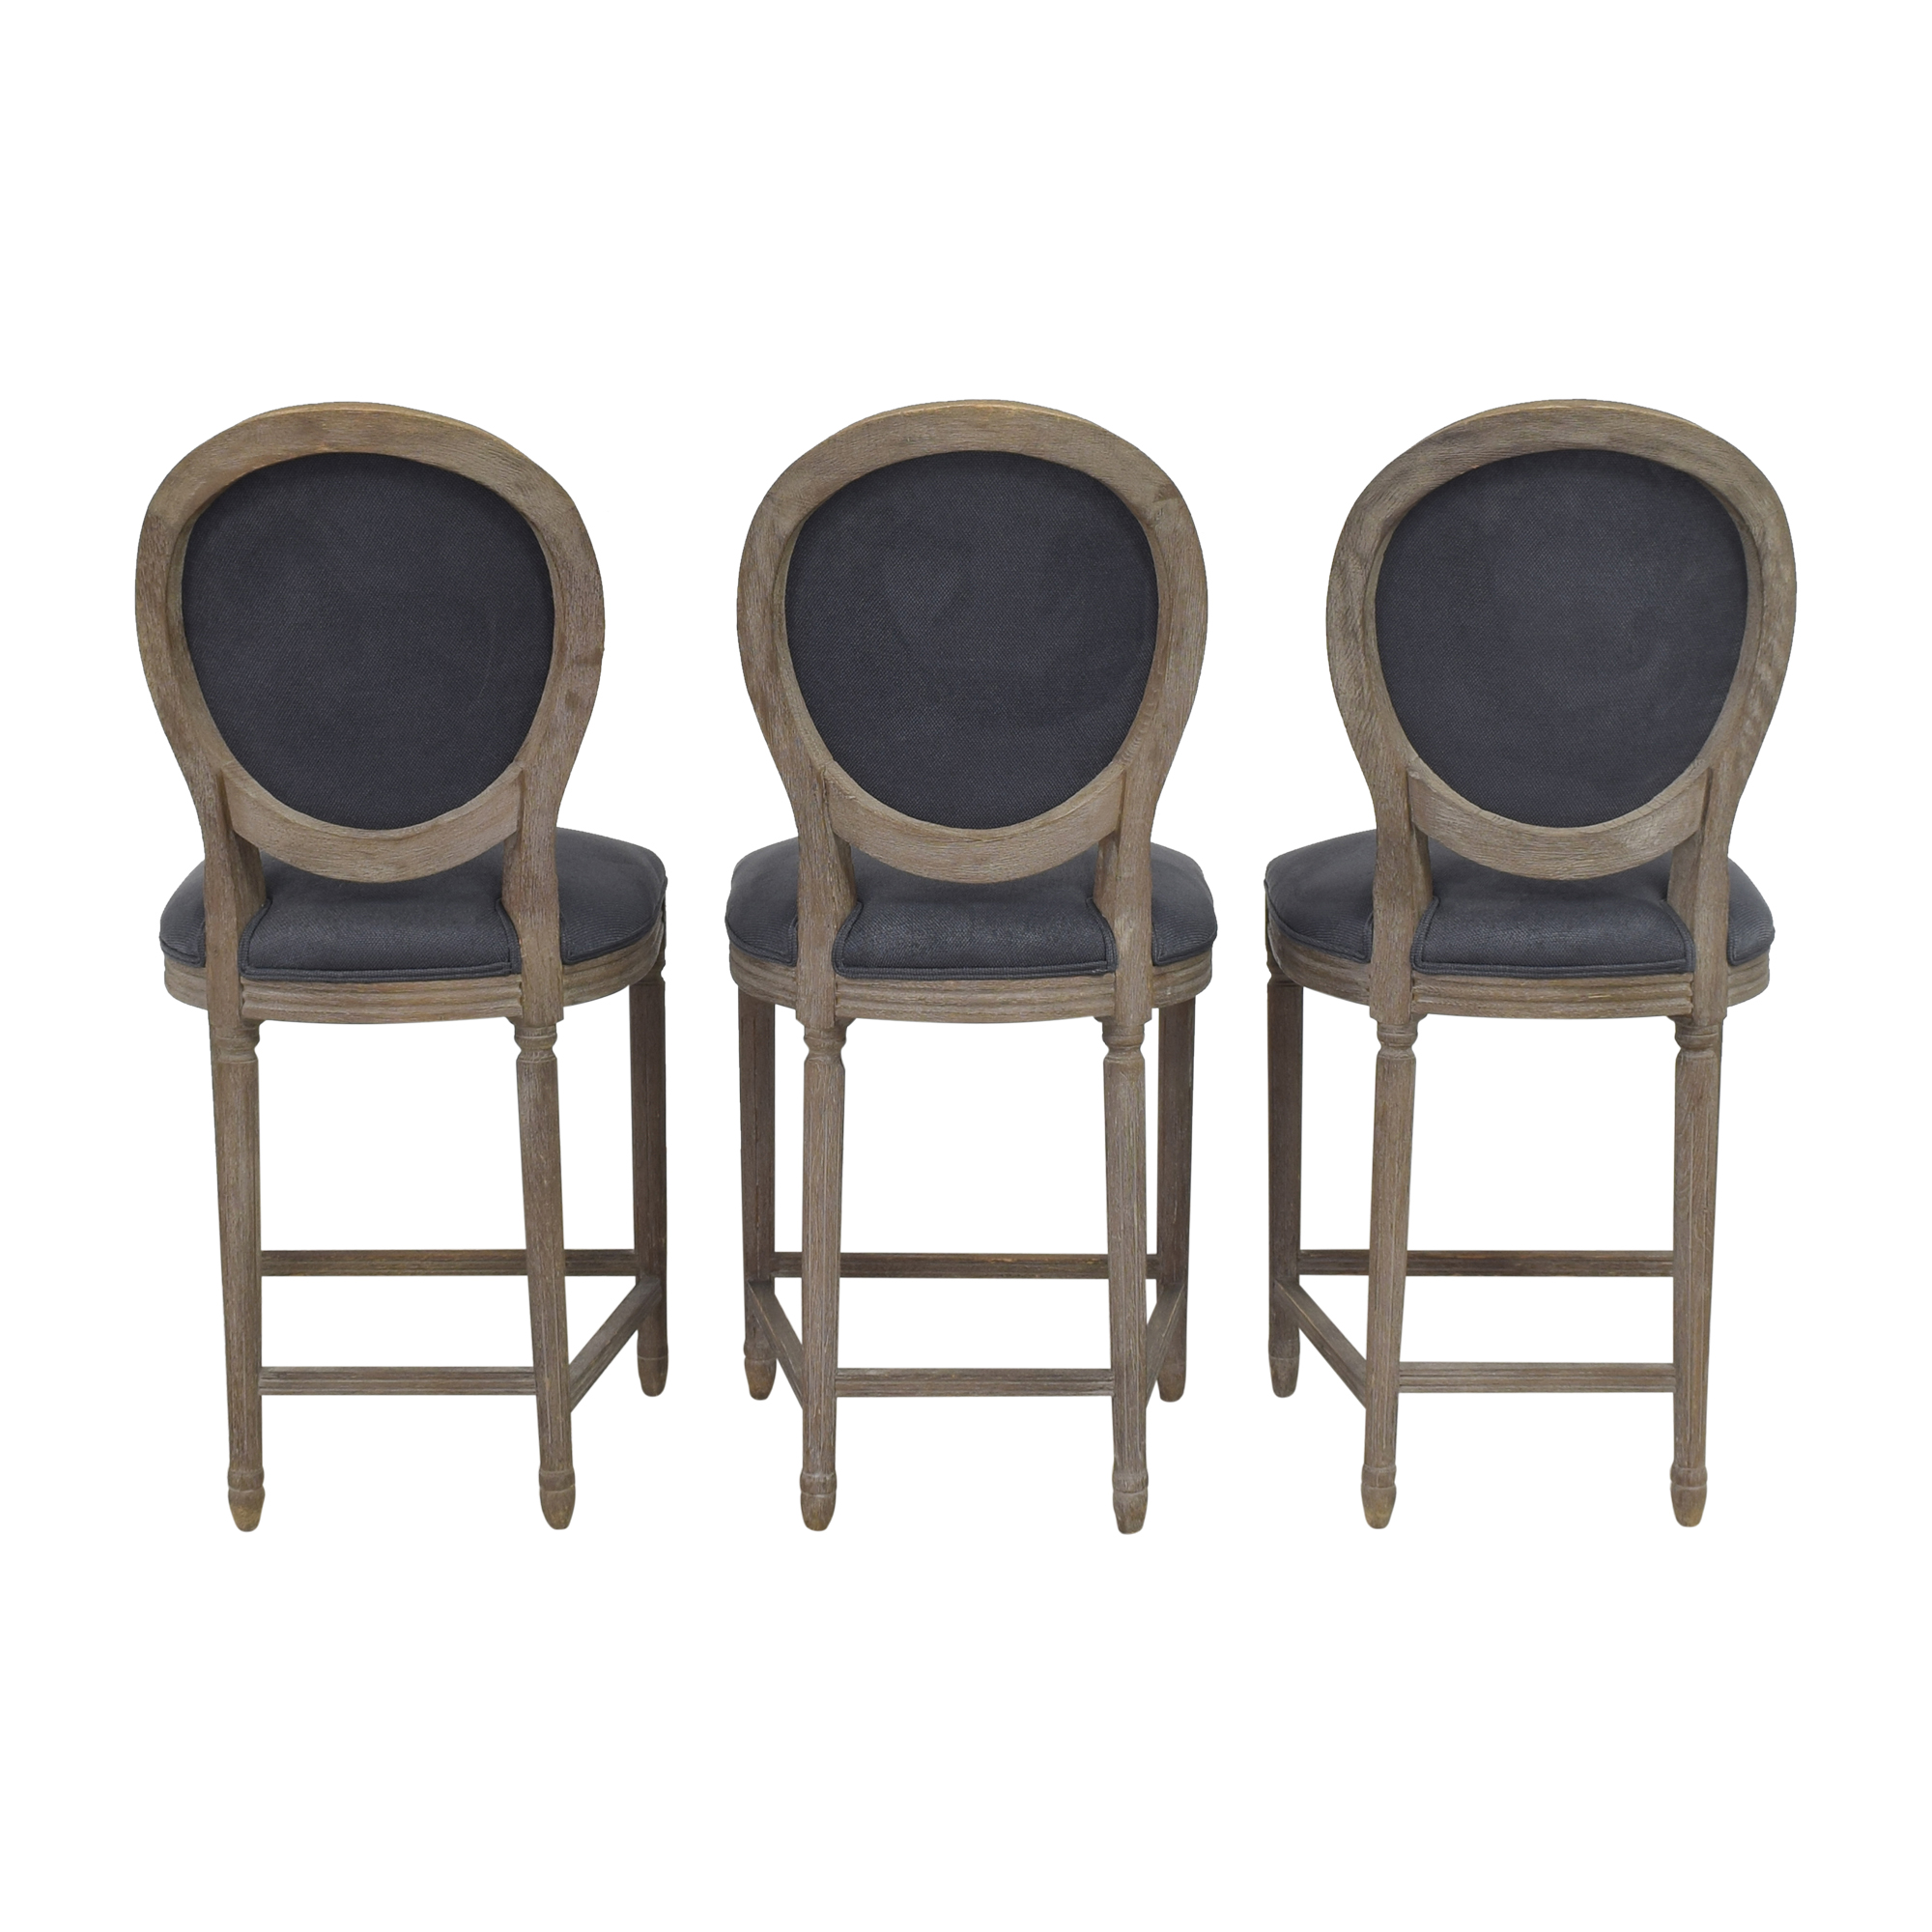 Restoration Hardware Restoration Hardware Vintage French Round Counter Stools Dining Chairs